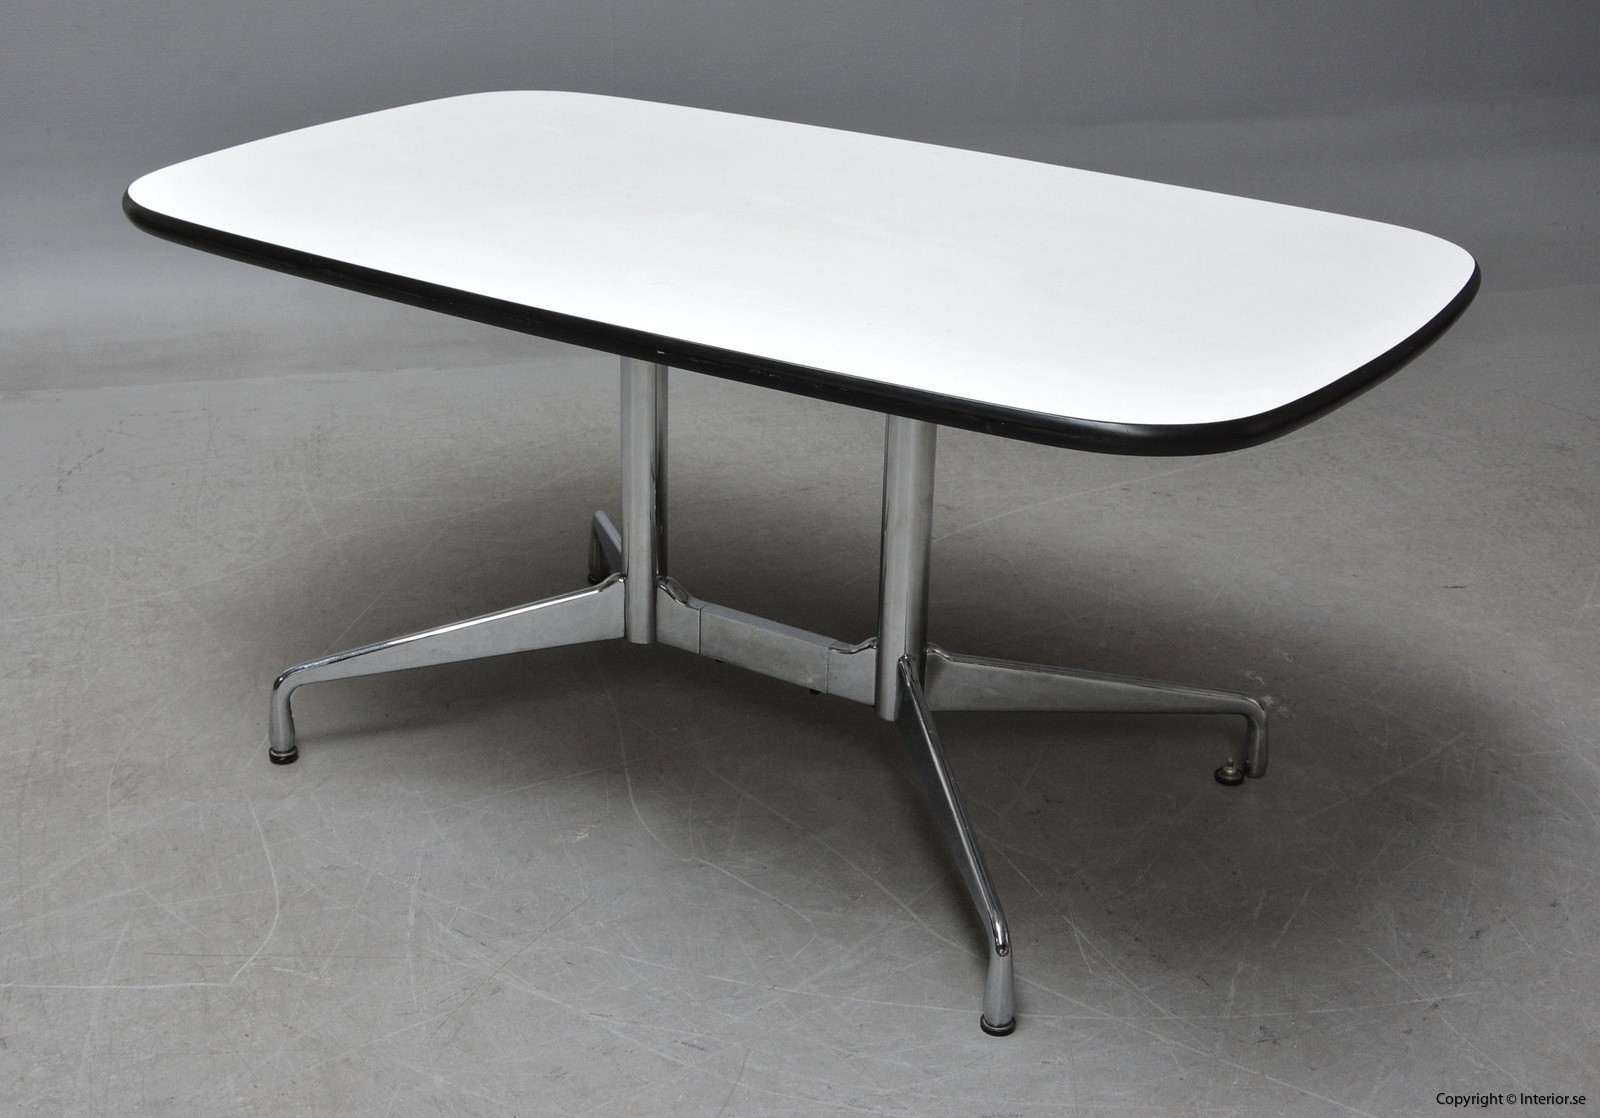 Bord table tisch Herman Miller Segmented Table - Charles & Ray Eames 3